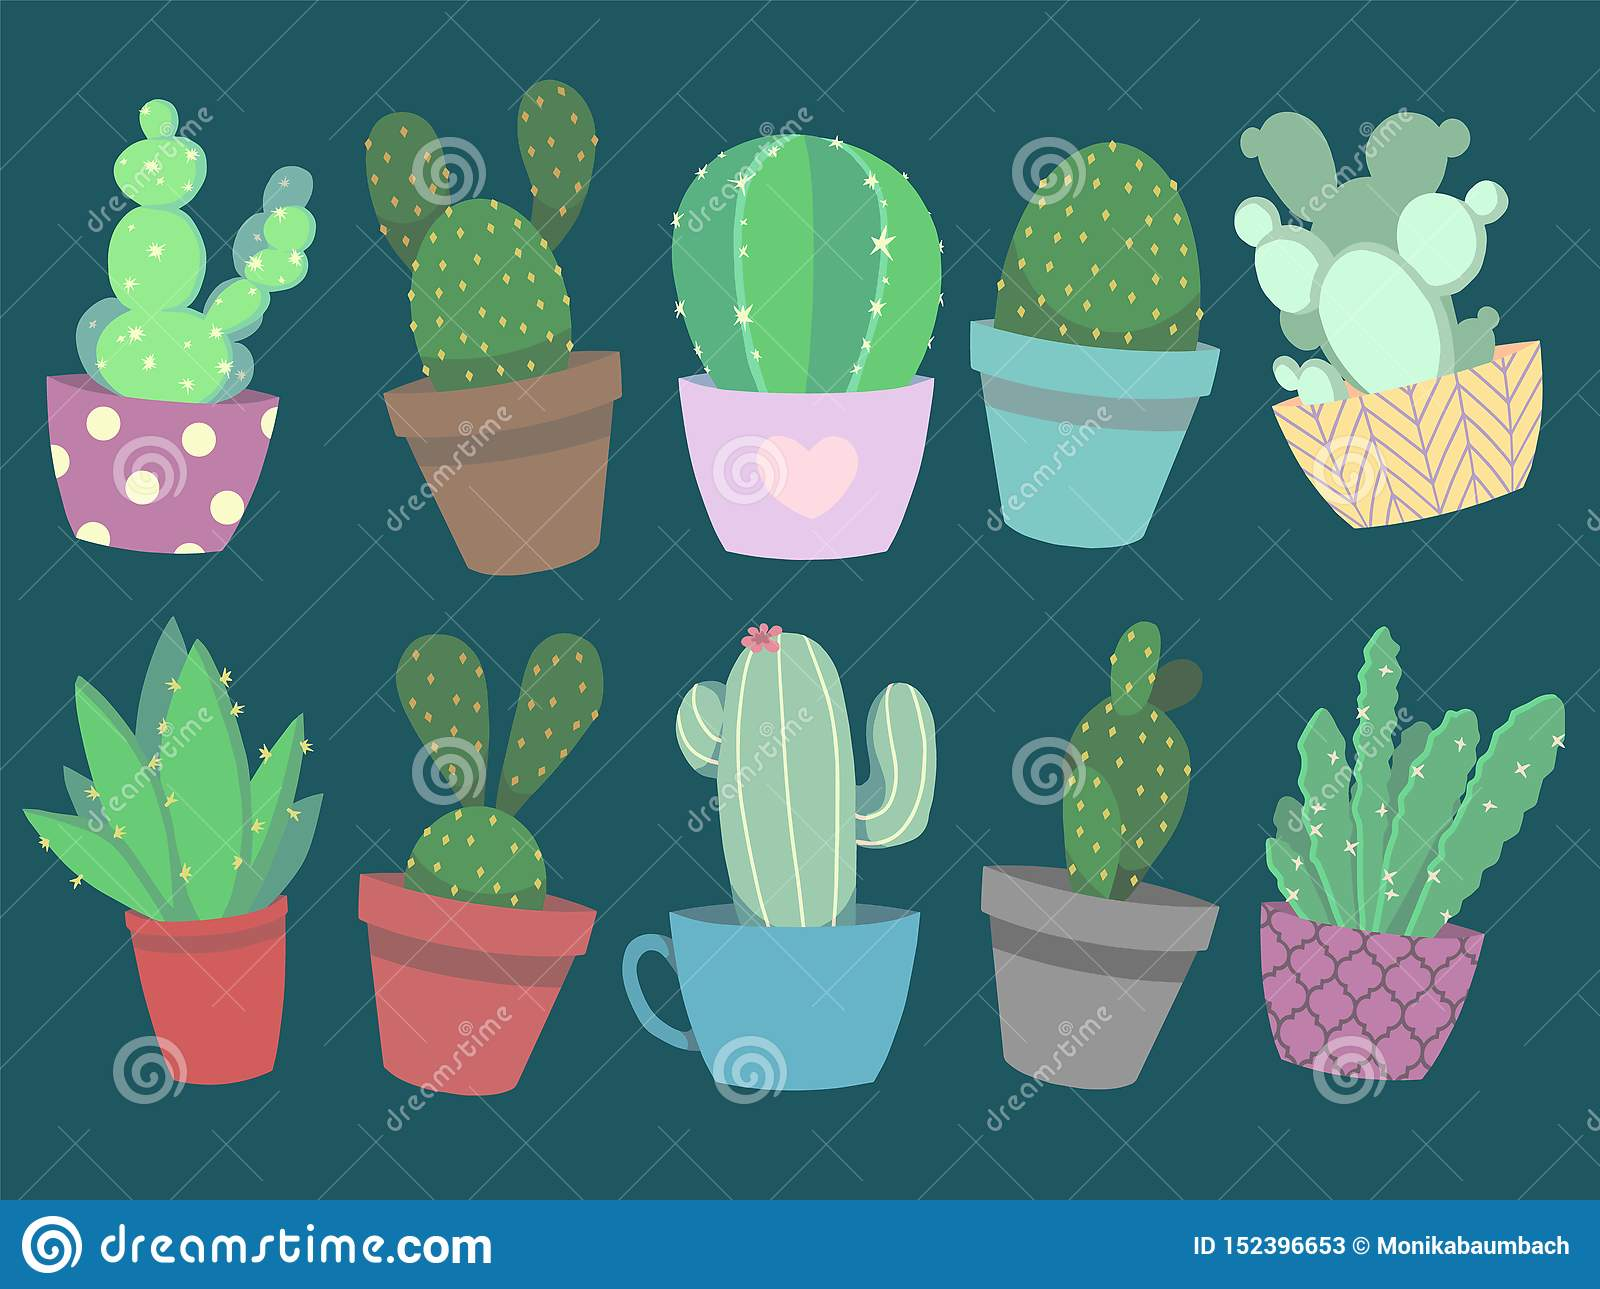 Collection Of Cute Colorful Cartoon Style Vector Cactus And Succulent Plants In Pots Stock Illustration Illustration Of Cartoon Mexican 152396653